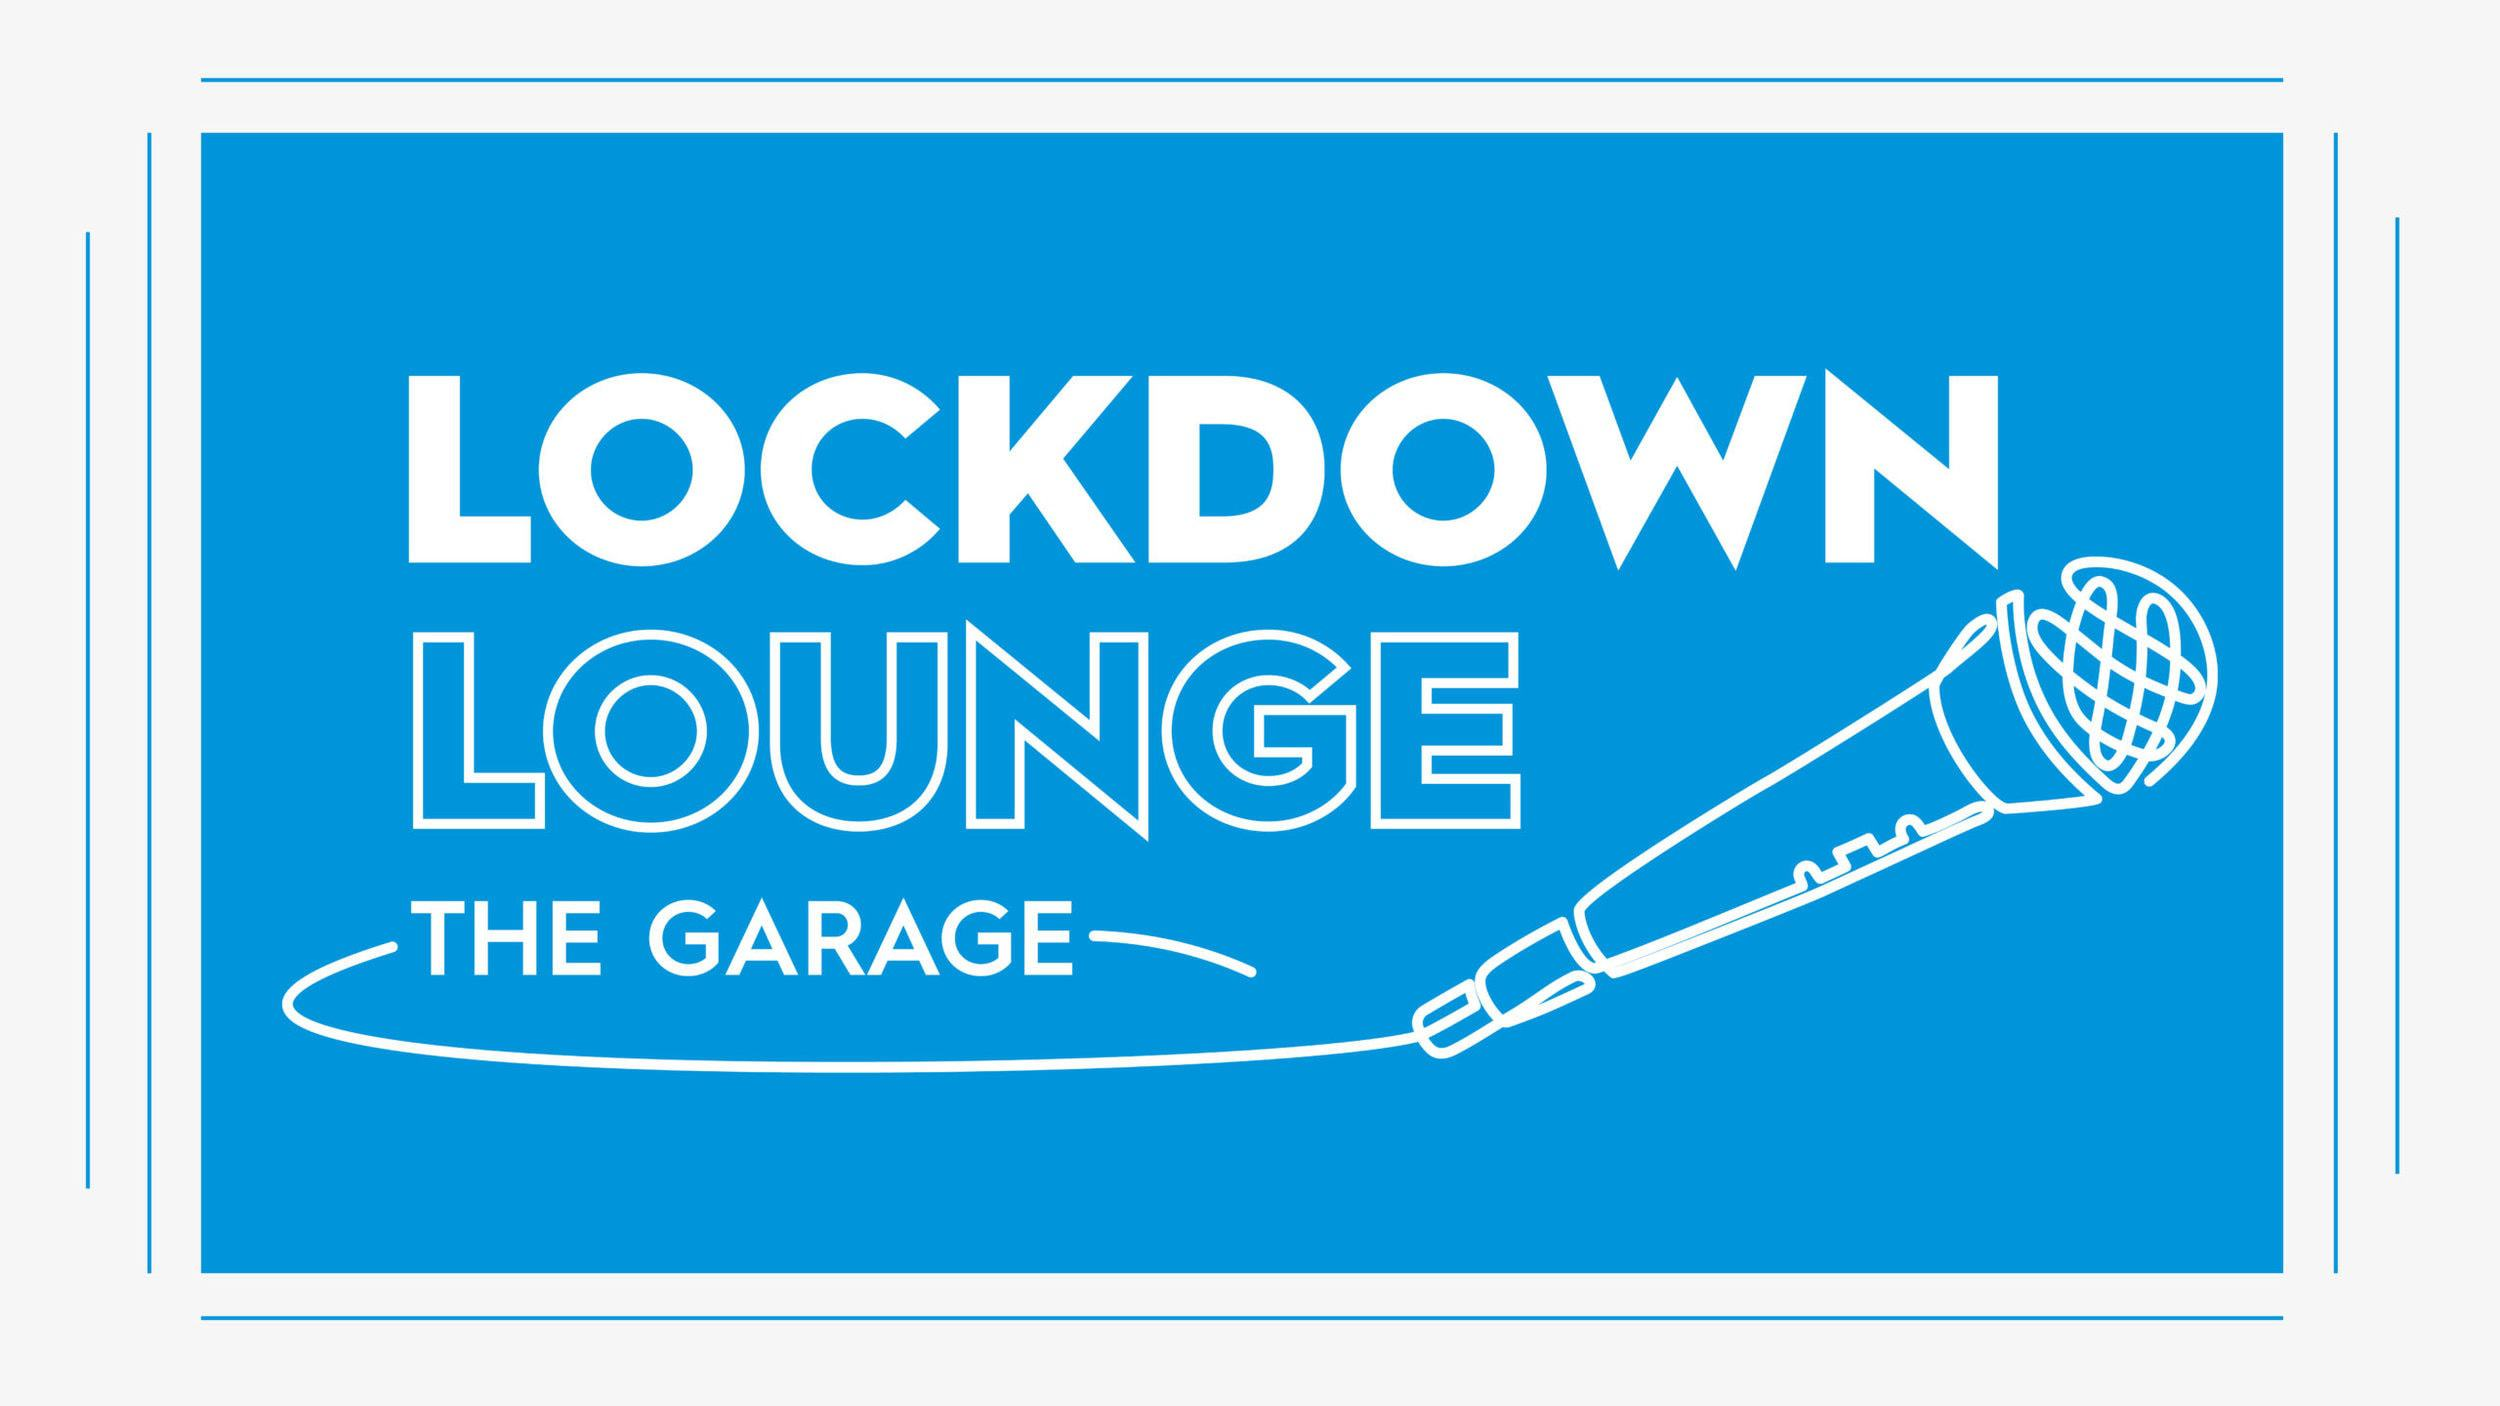 Lockdown Lounge The Garage